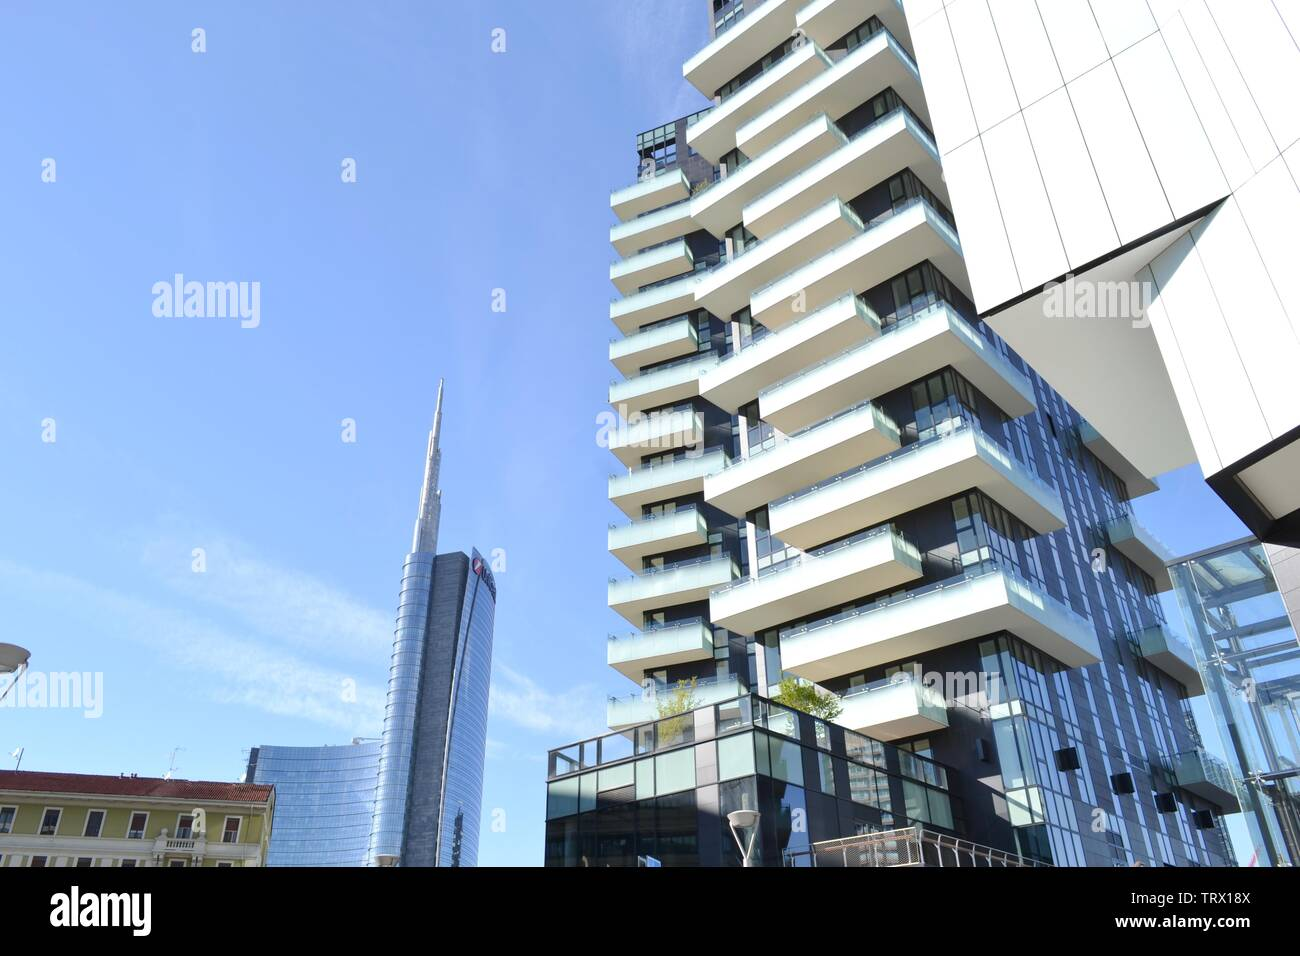 Milan/Italy - March, 28, 2015: Modern highly technological look of a new residence part of Porta Nuova district and Unicredit skyscraper in background Stock Photo